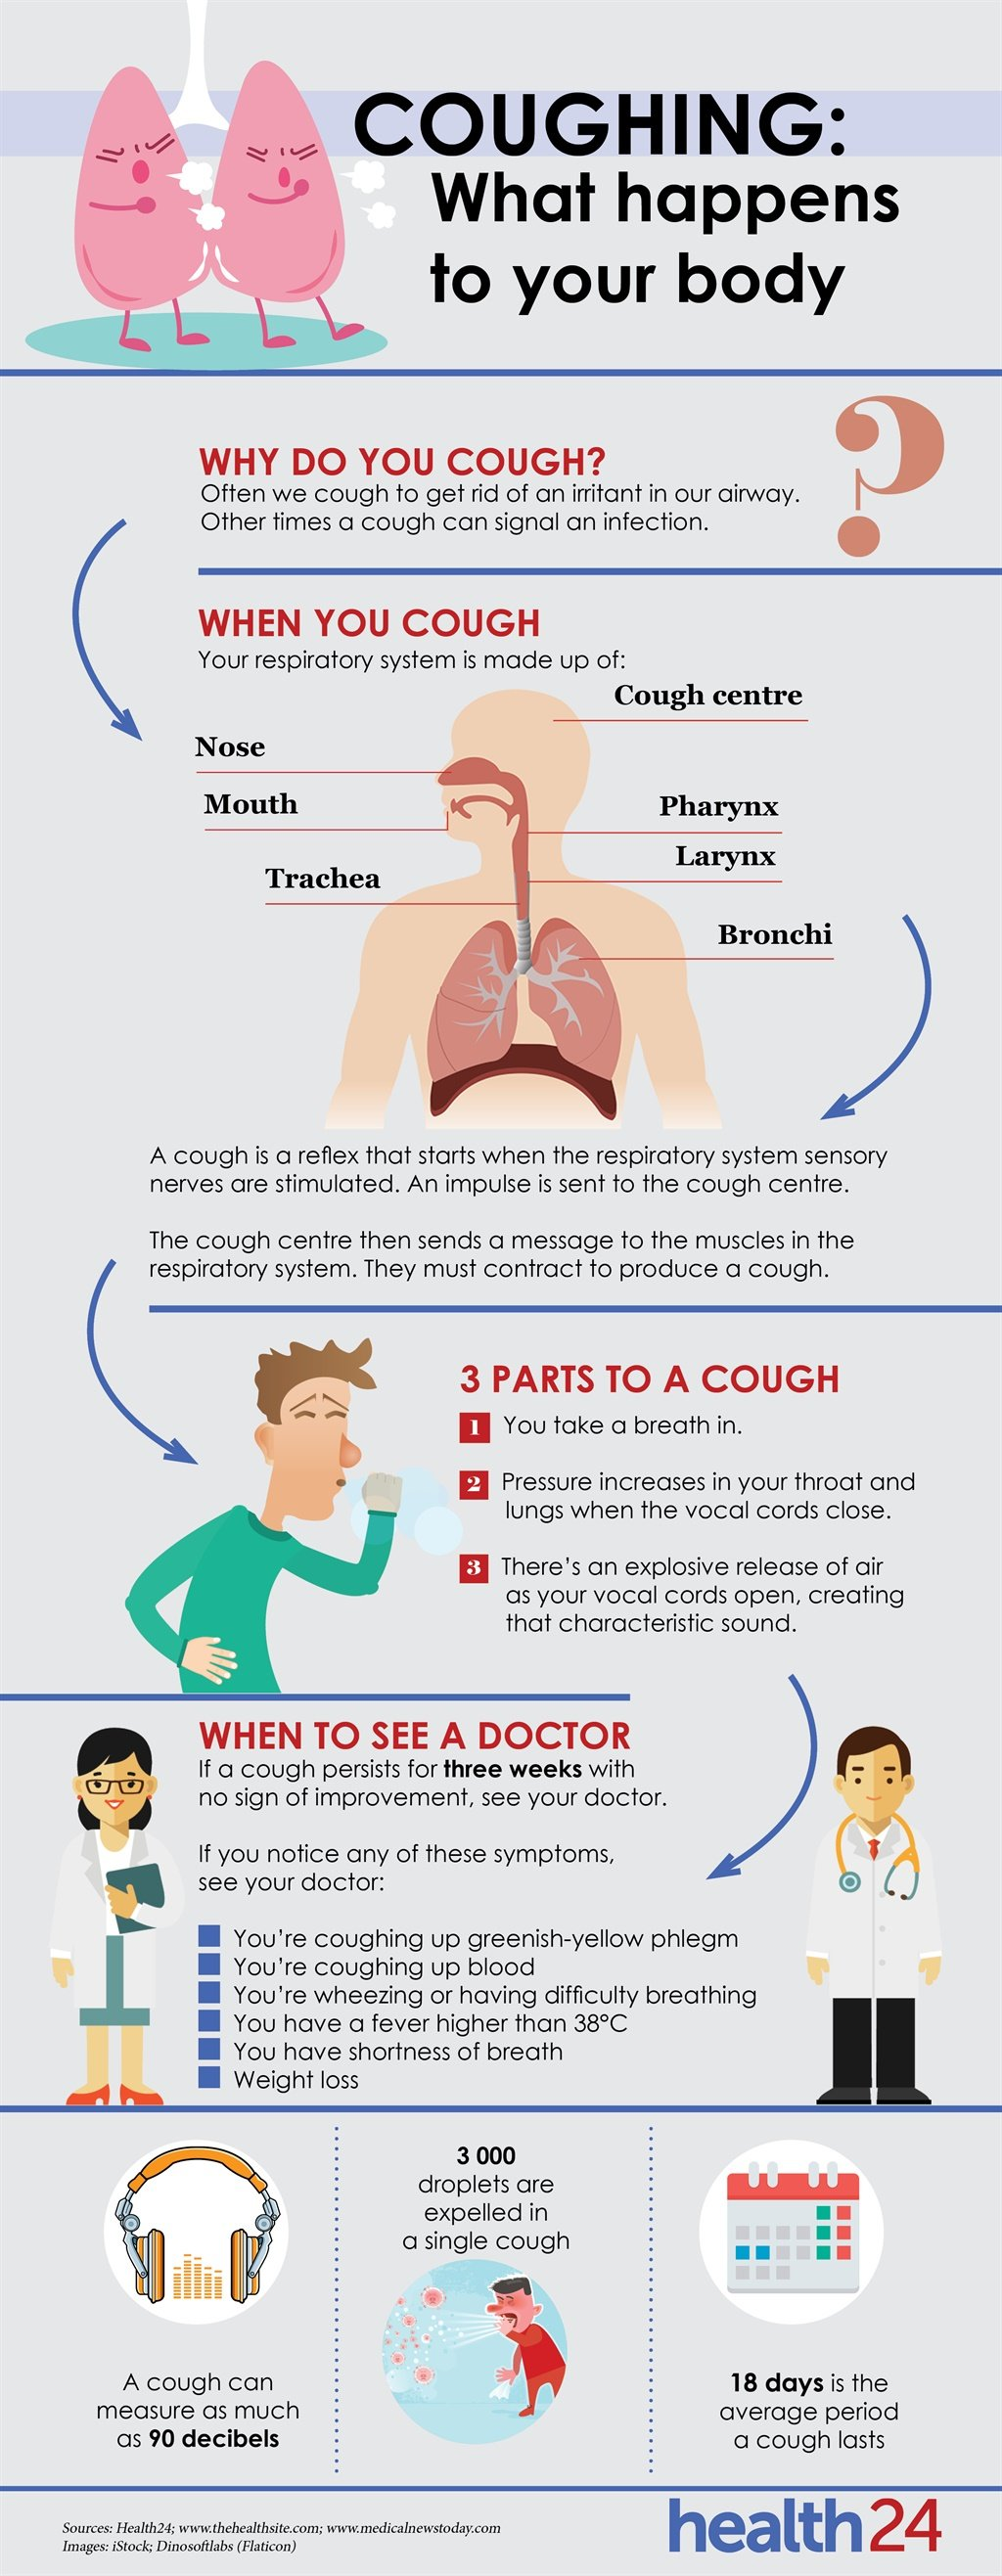 This is what happens to your body when you cough i